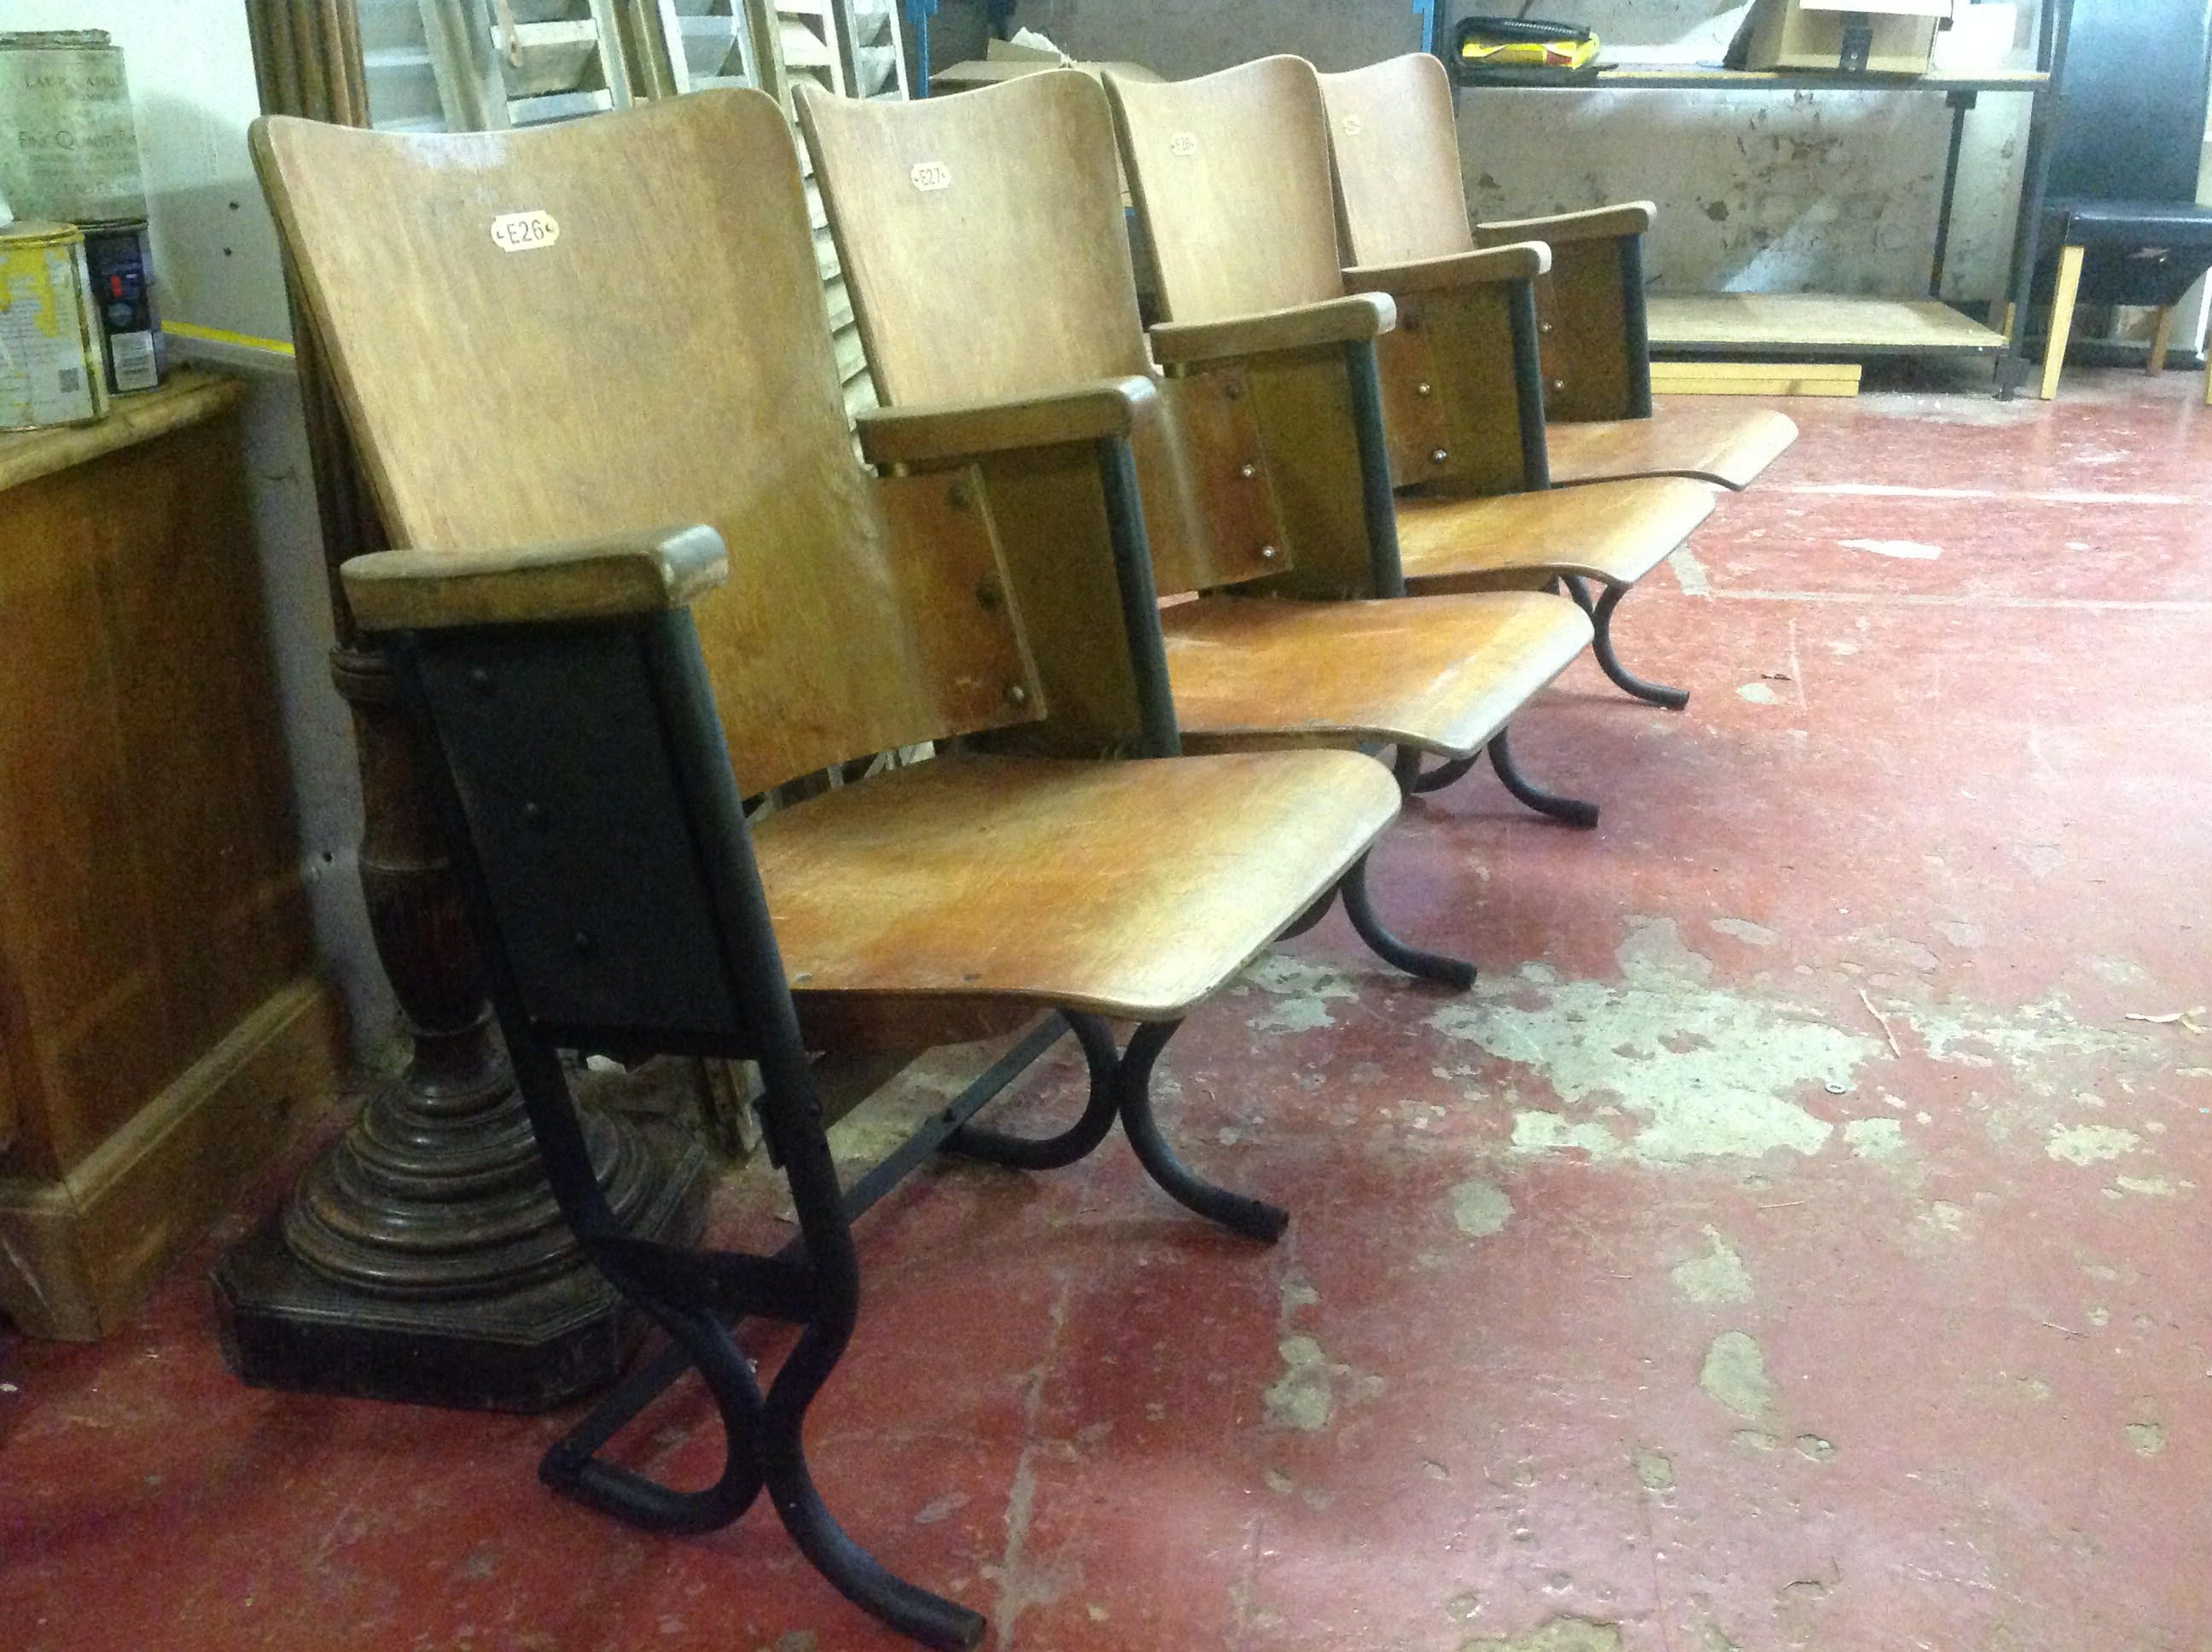 Fine Four Vintage Cinema Theatre Picture House Seats Industrial Caraccident5 Cool Chair Designs And Ideas Caraccident5Info